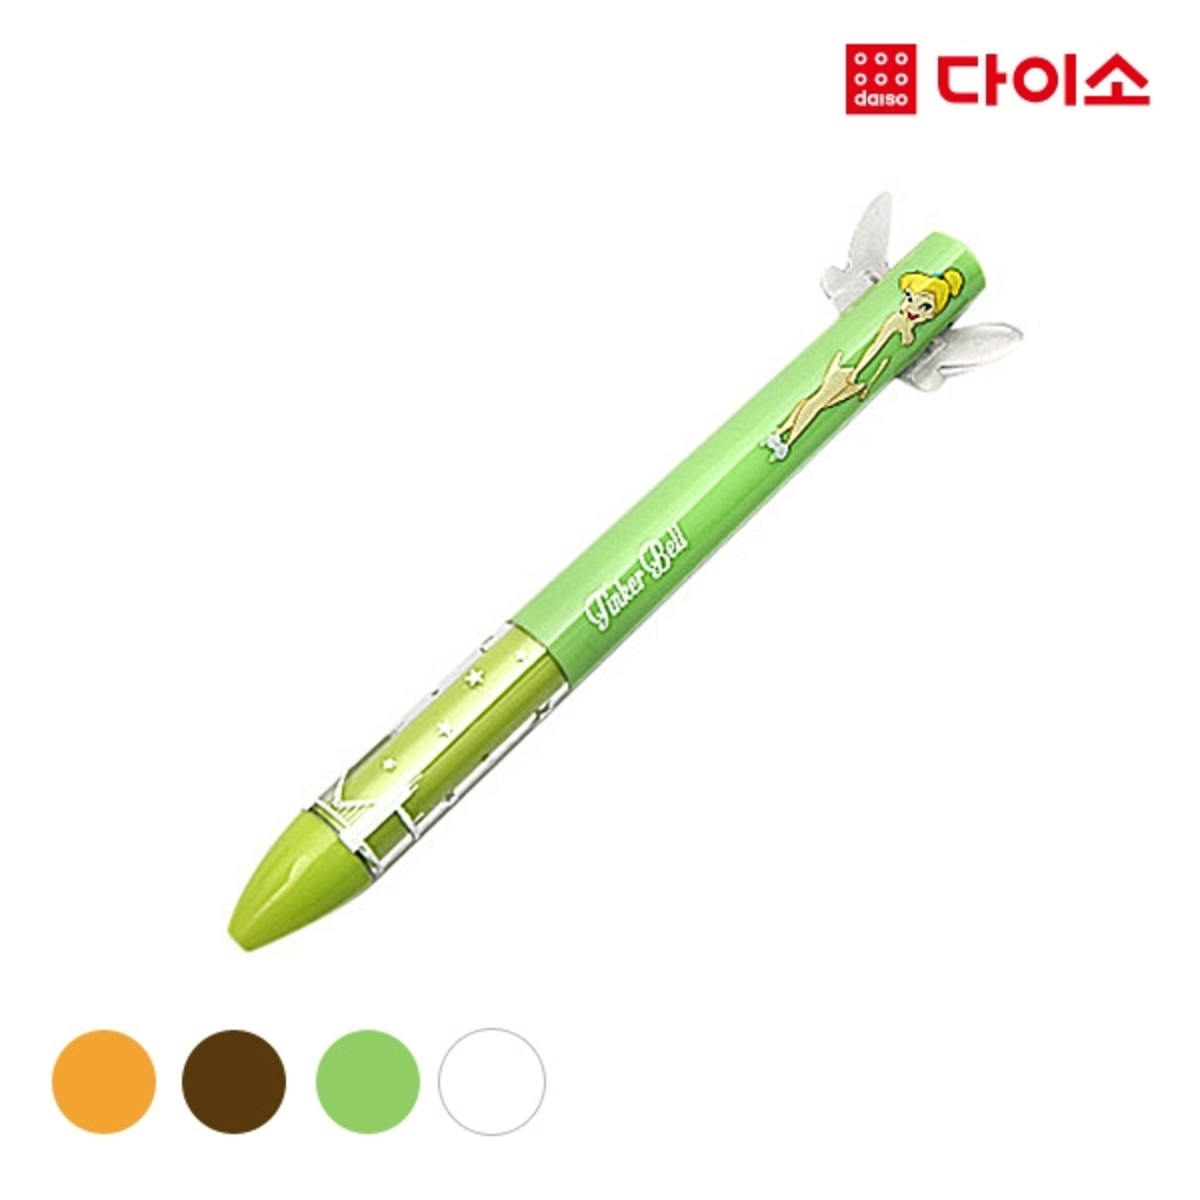 TinkerBell Quick Dry Neutral Pen (2 colors /0.5mm) - Green